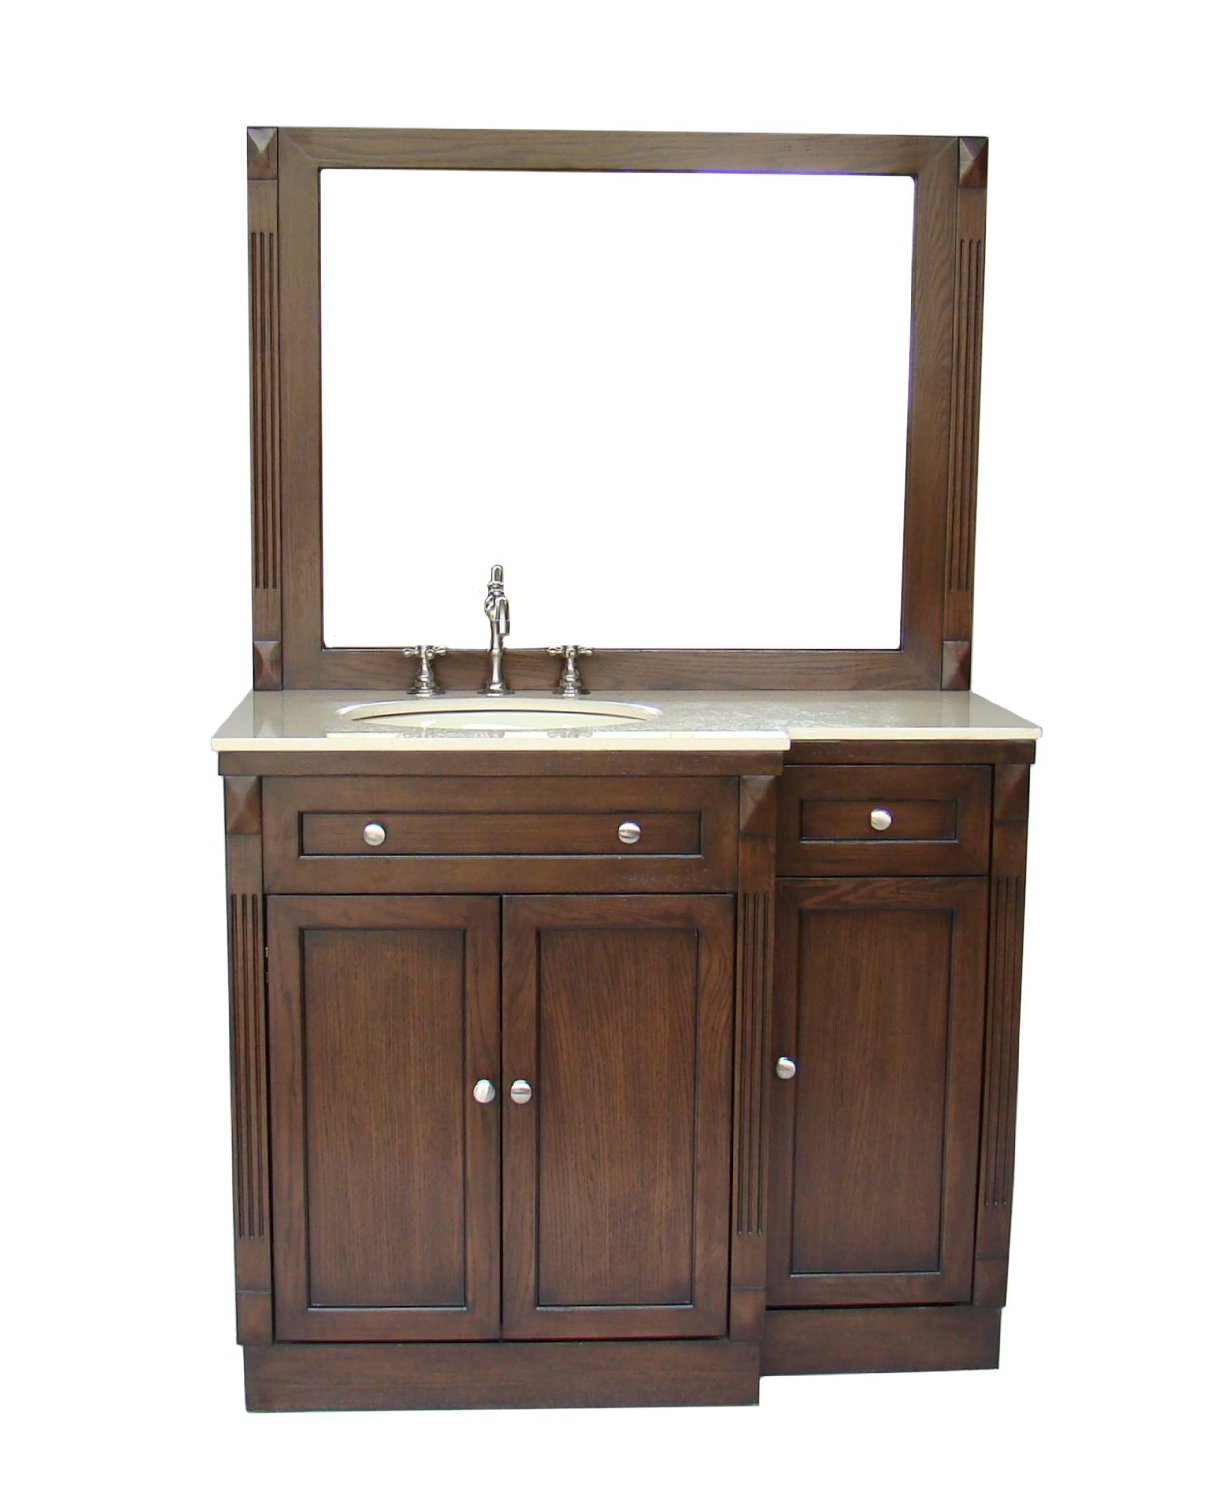 Adelina 42 inch Traditional Bathroom Vanity Cream Marble Top ...